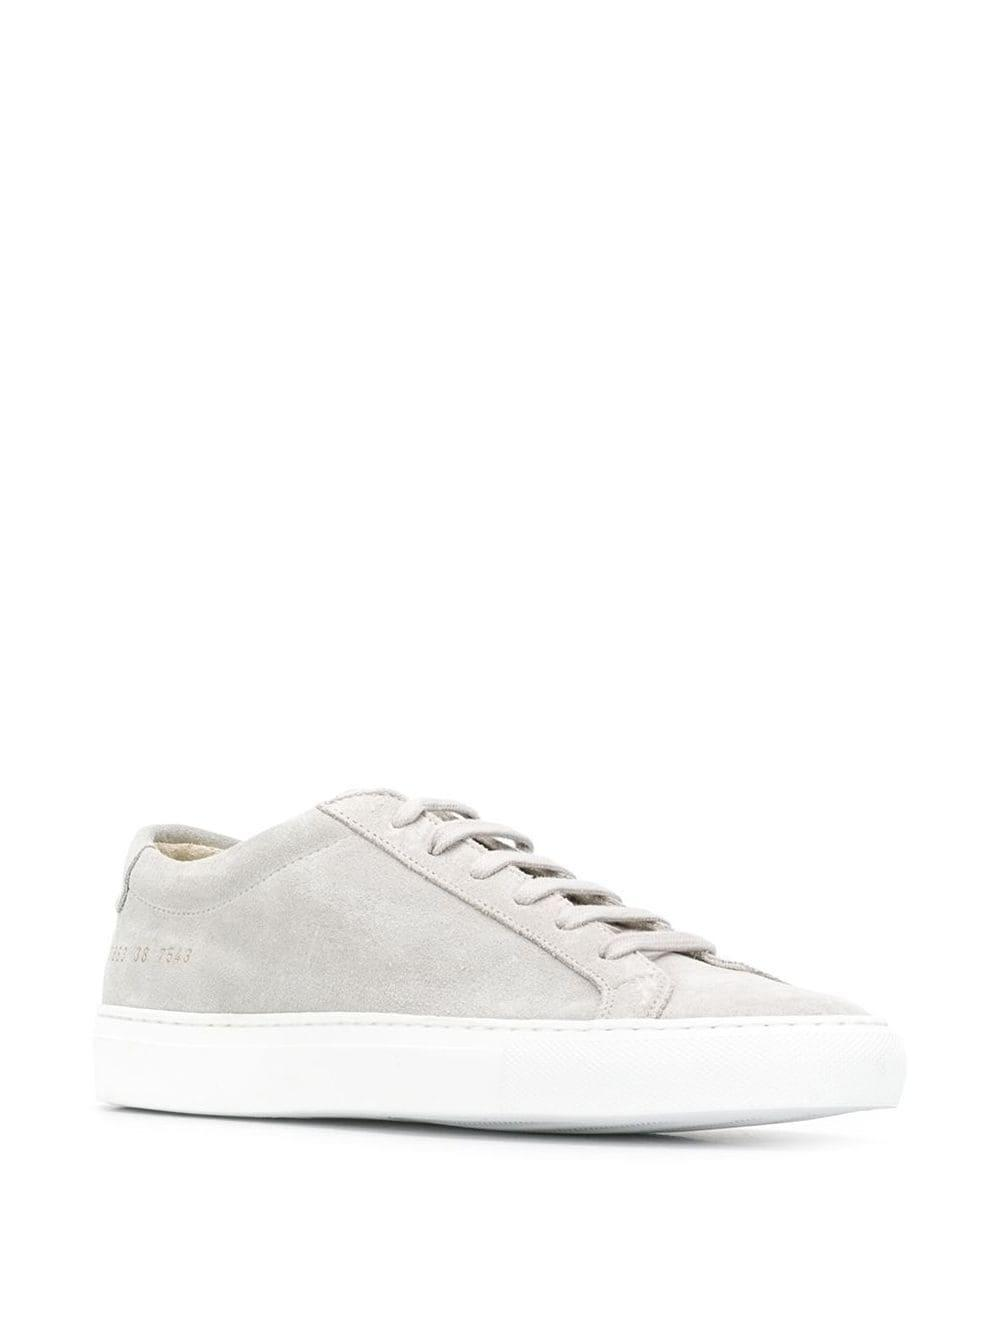 Zapatillas Original Achilles Common Projects de Ante de color Gris